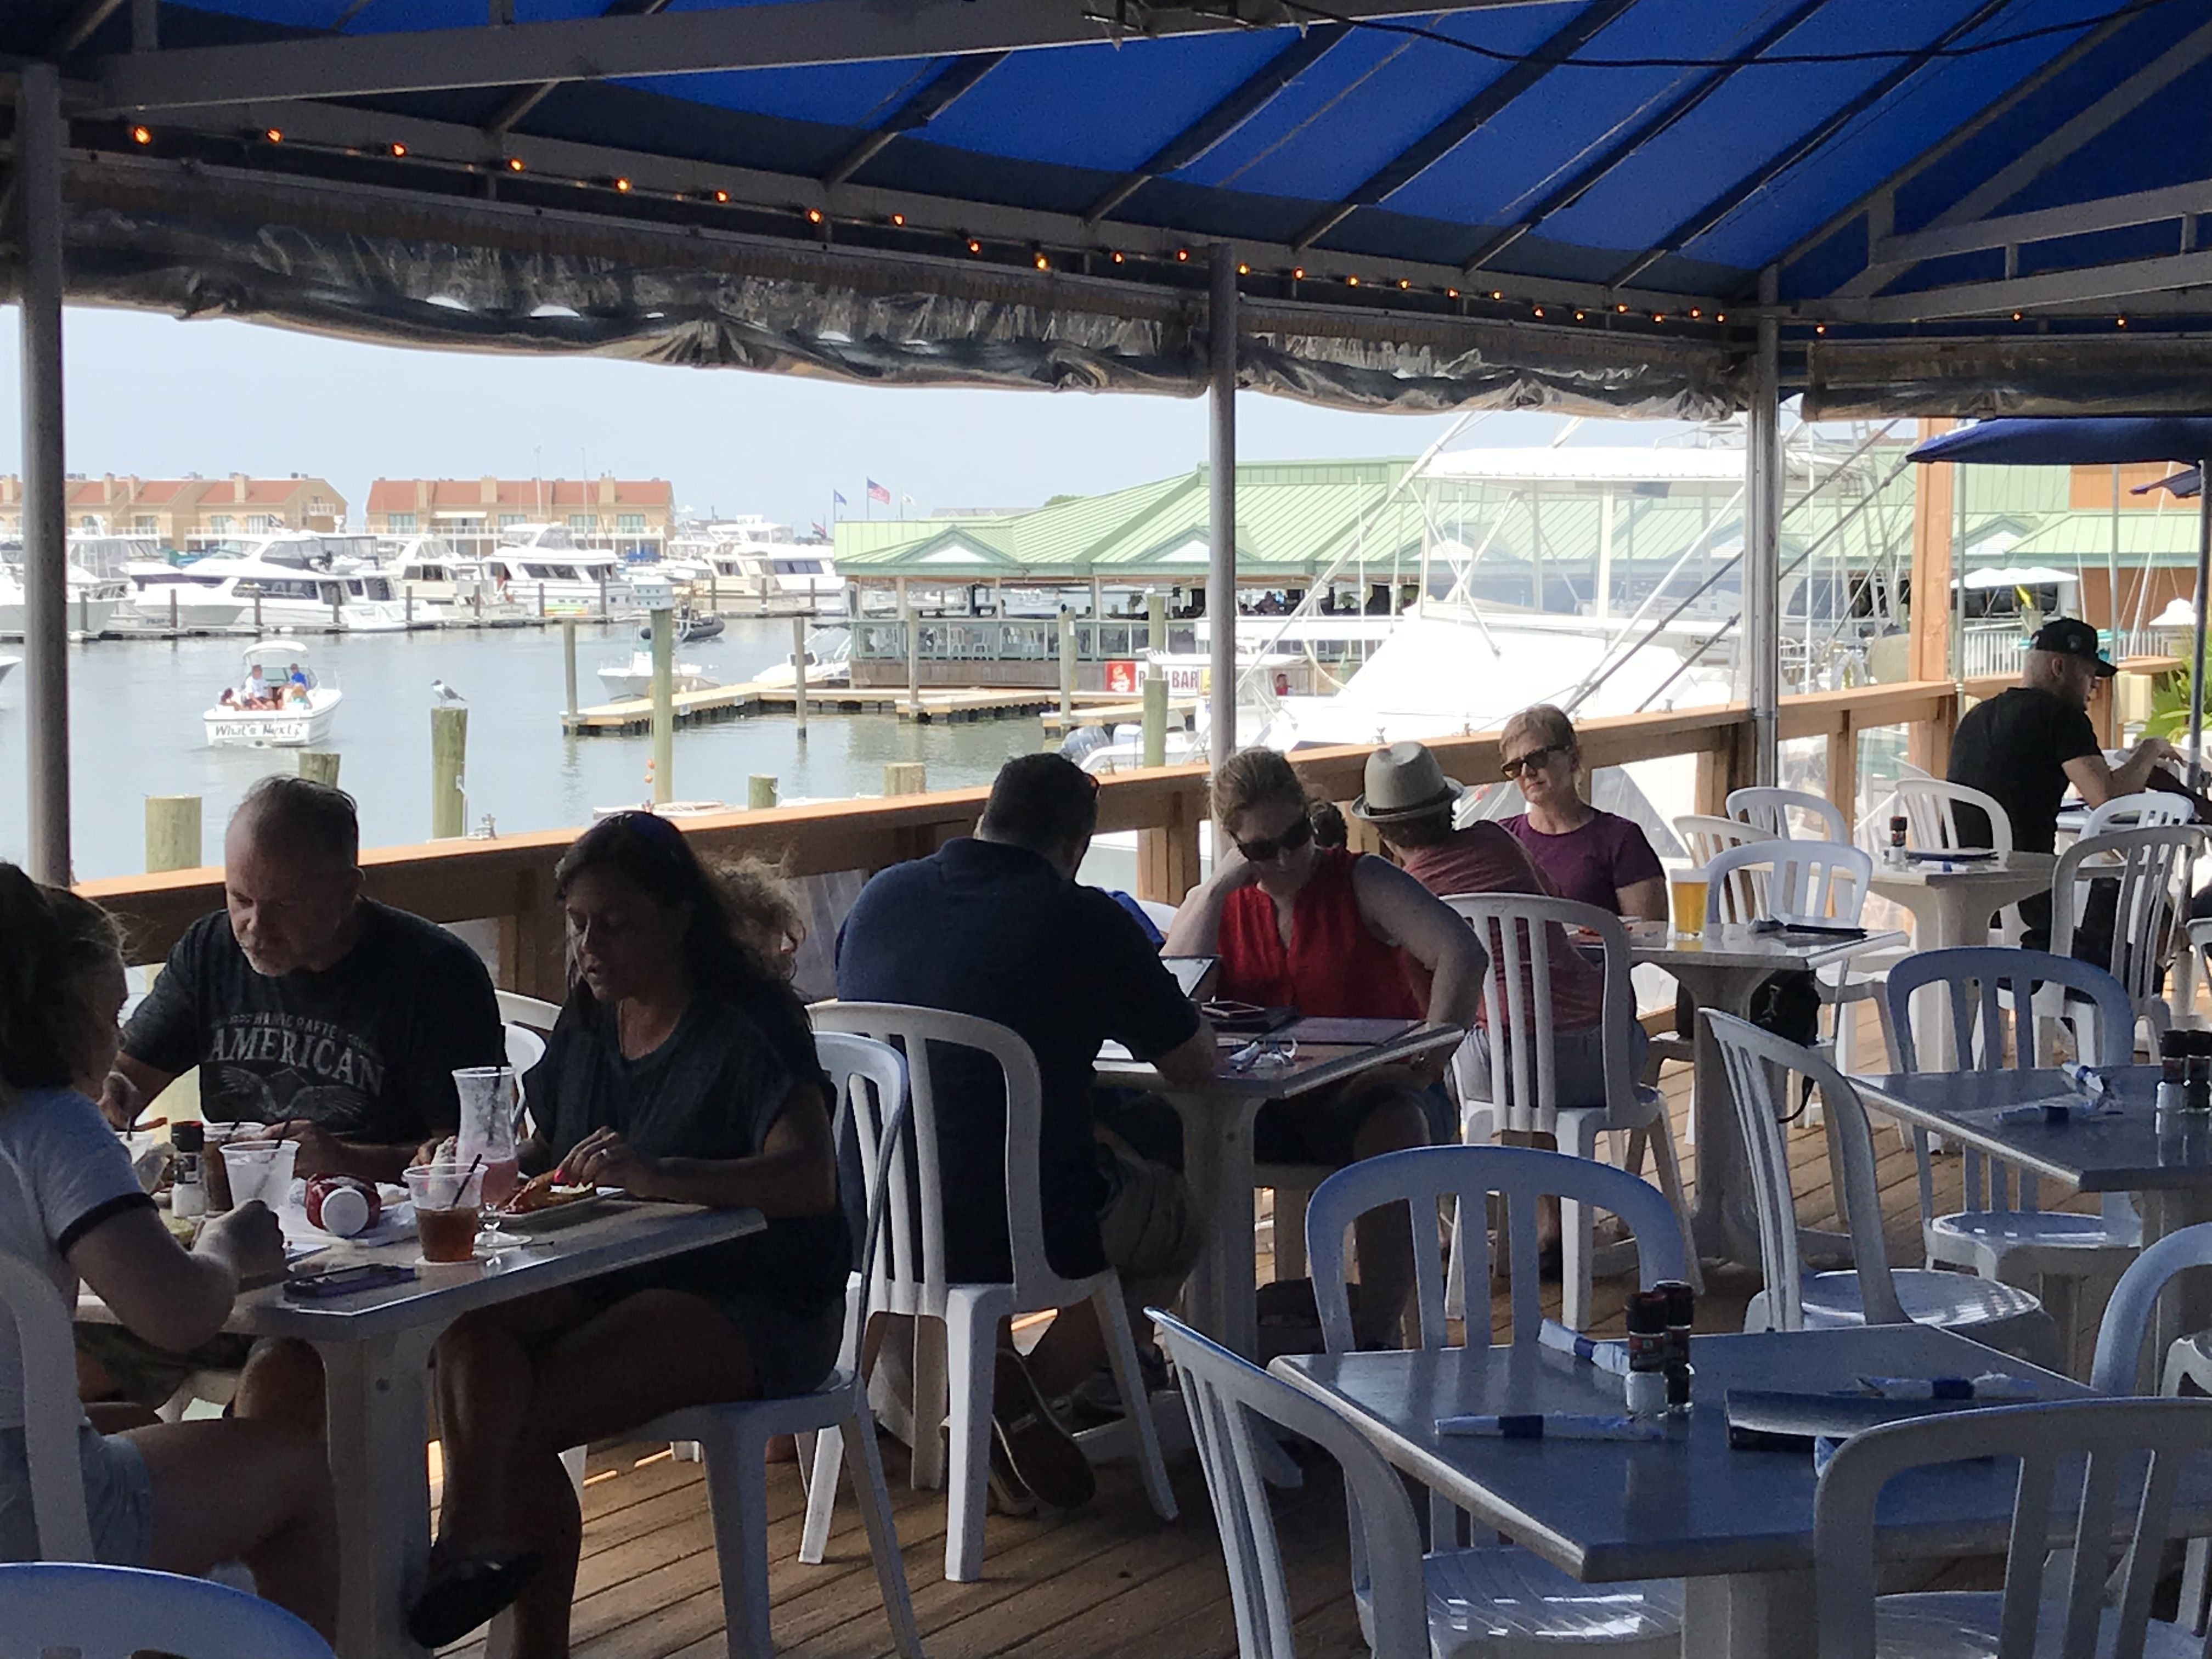 Boathouse Restaurant Marina Deck I Enjoyed Sunday Lunch At This Casual Spot Along The Water That Opened In 1989 Th Wildwood Restaurant Wildwood Wildwood Nj